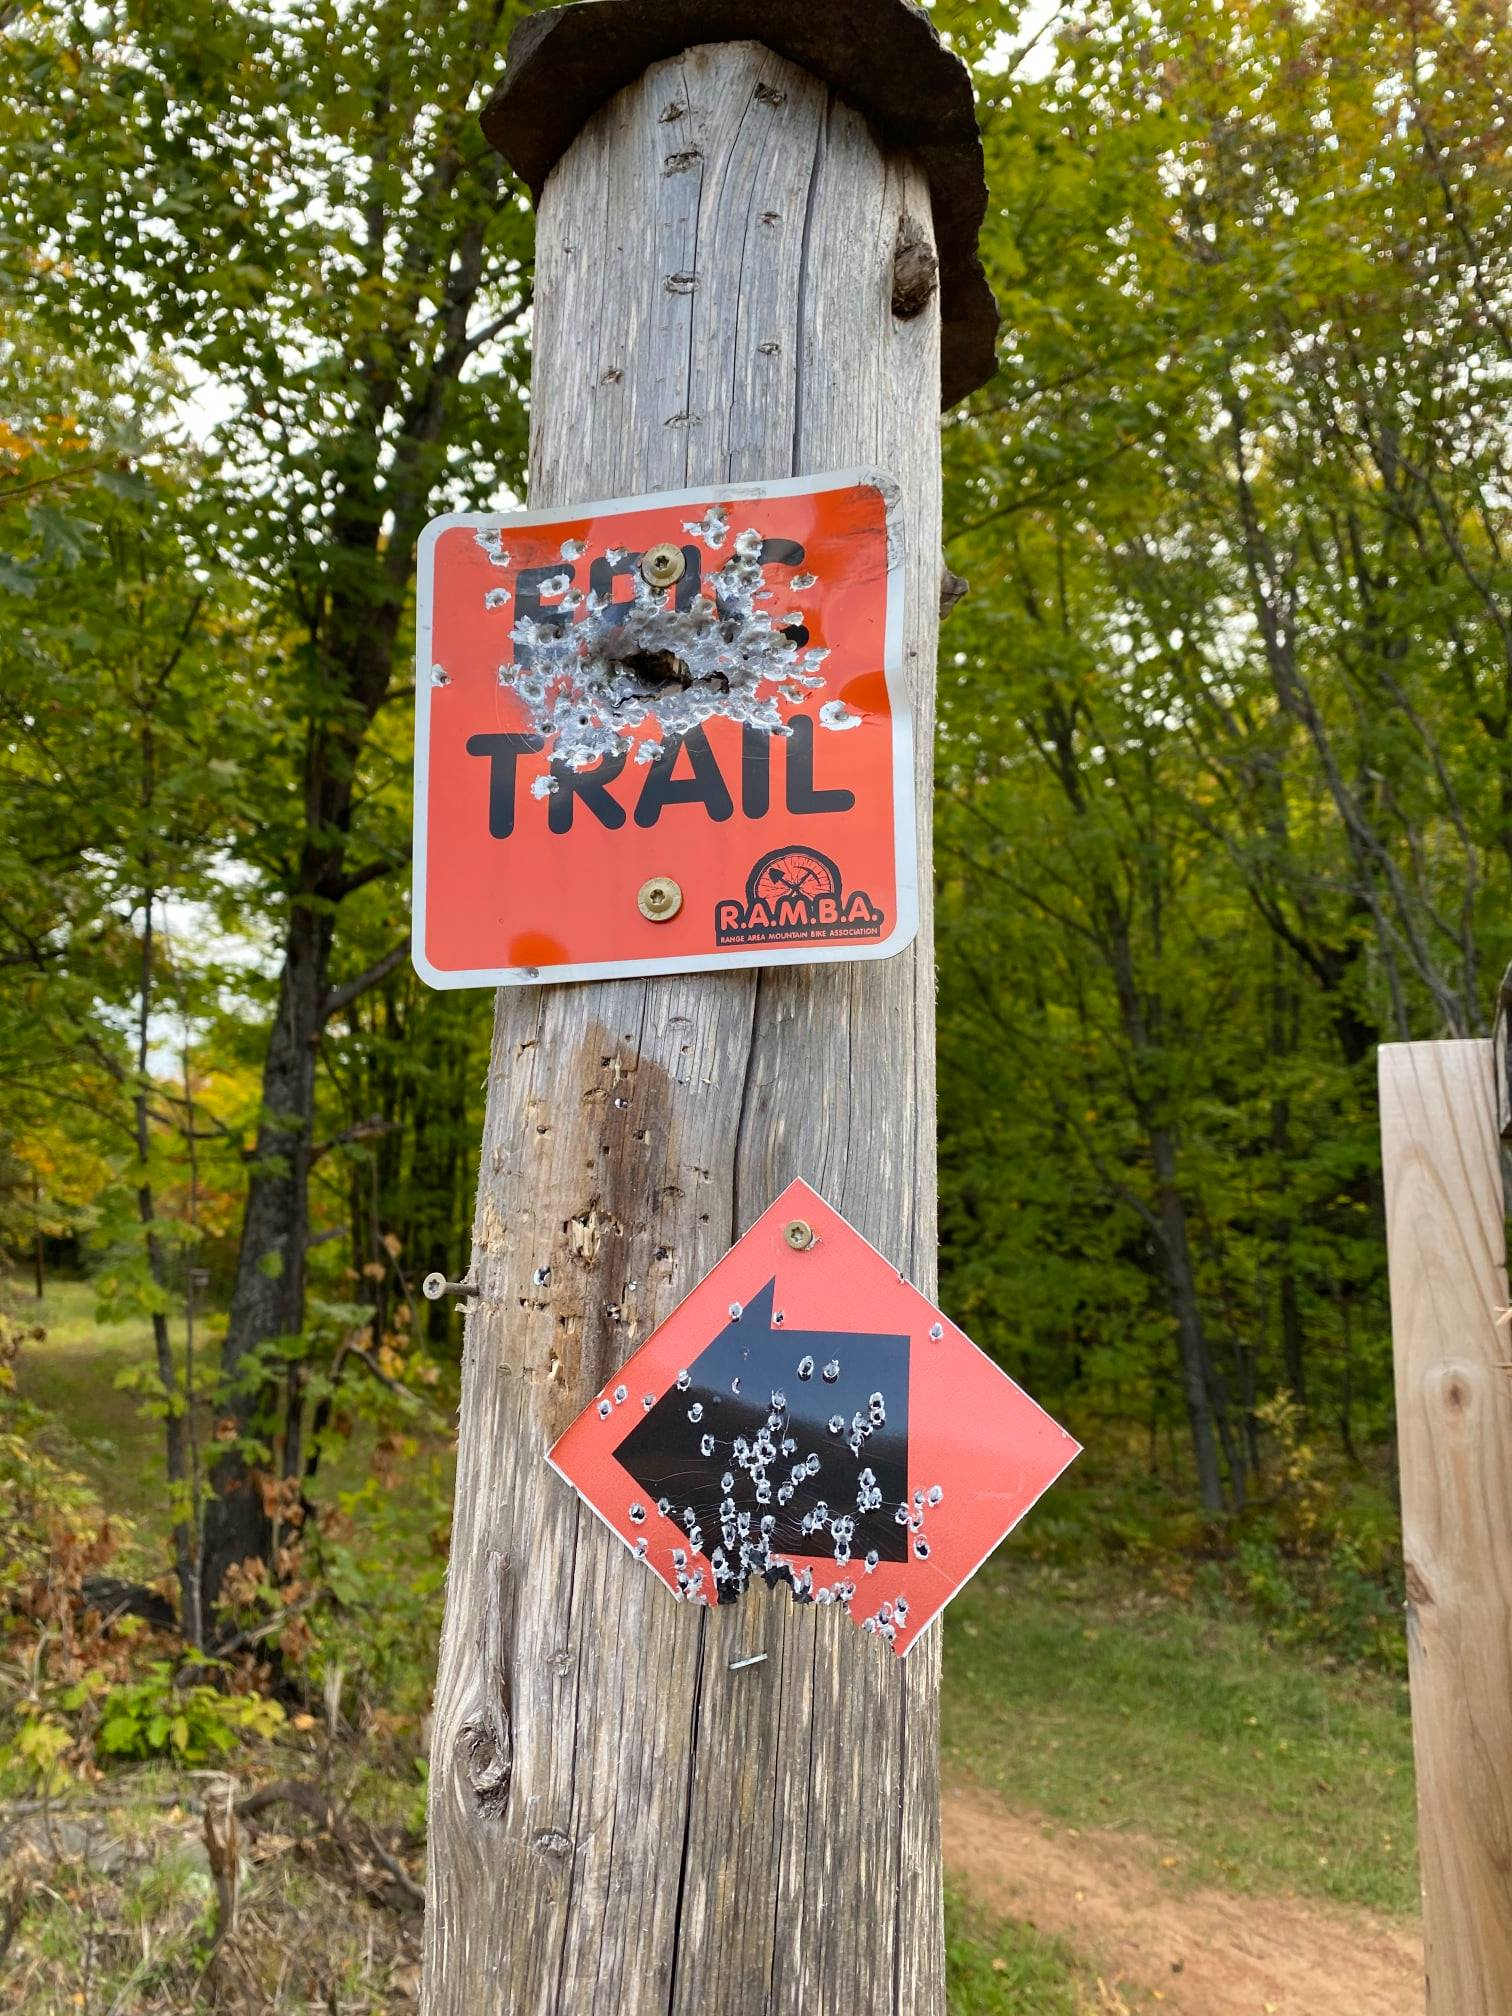 Sign damage on the Norman Juhola trail system